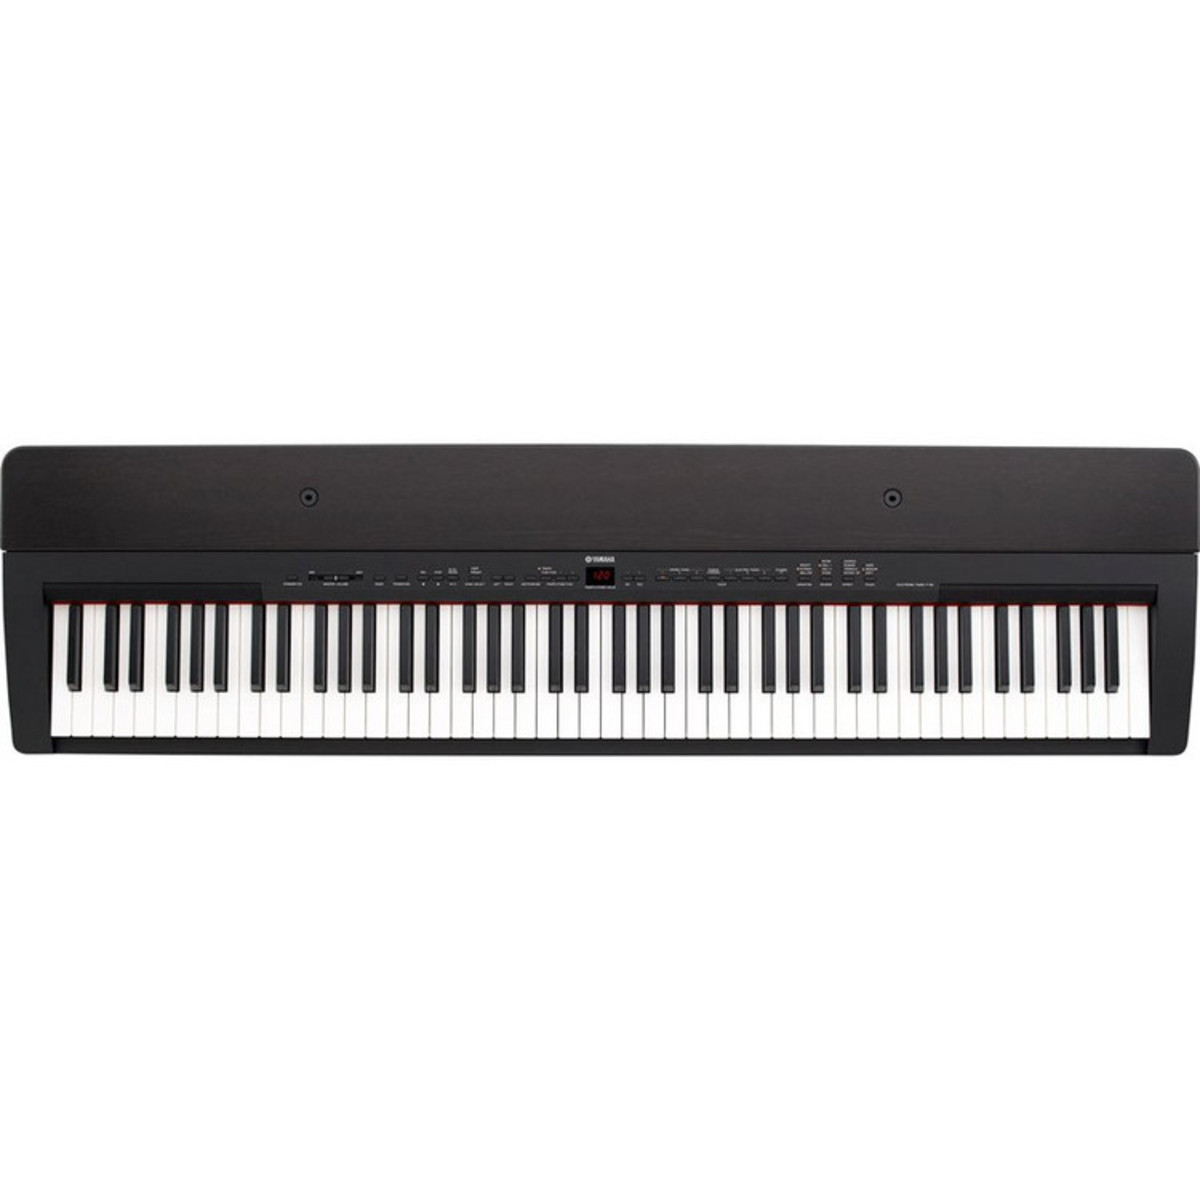 Yamaha P-140 88 Key Stage Piano, Black at Gear4music.com